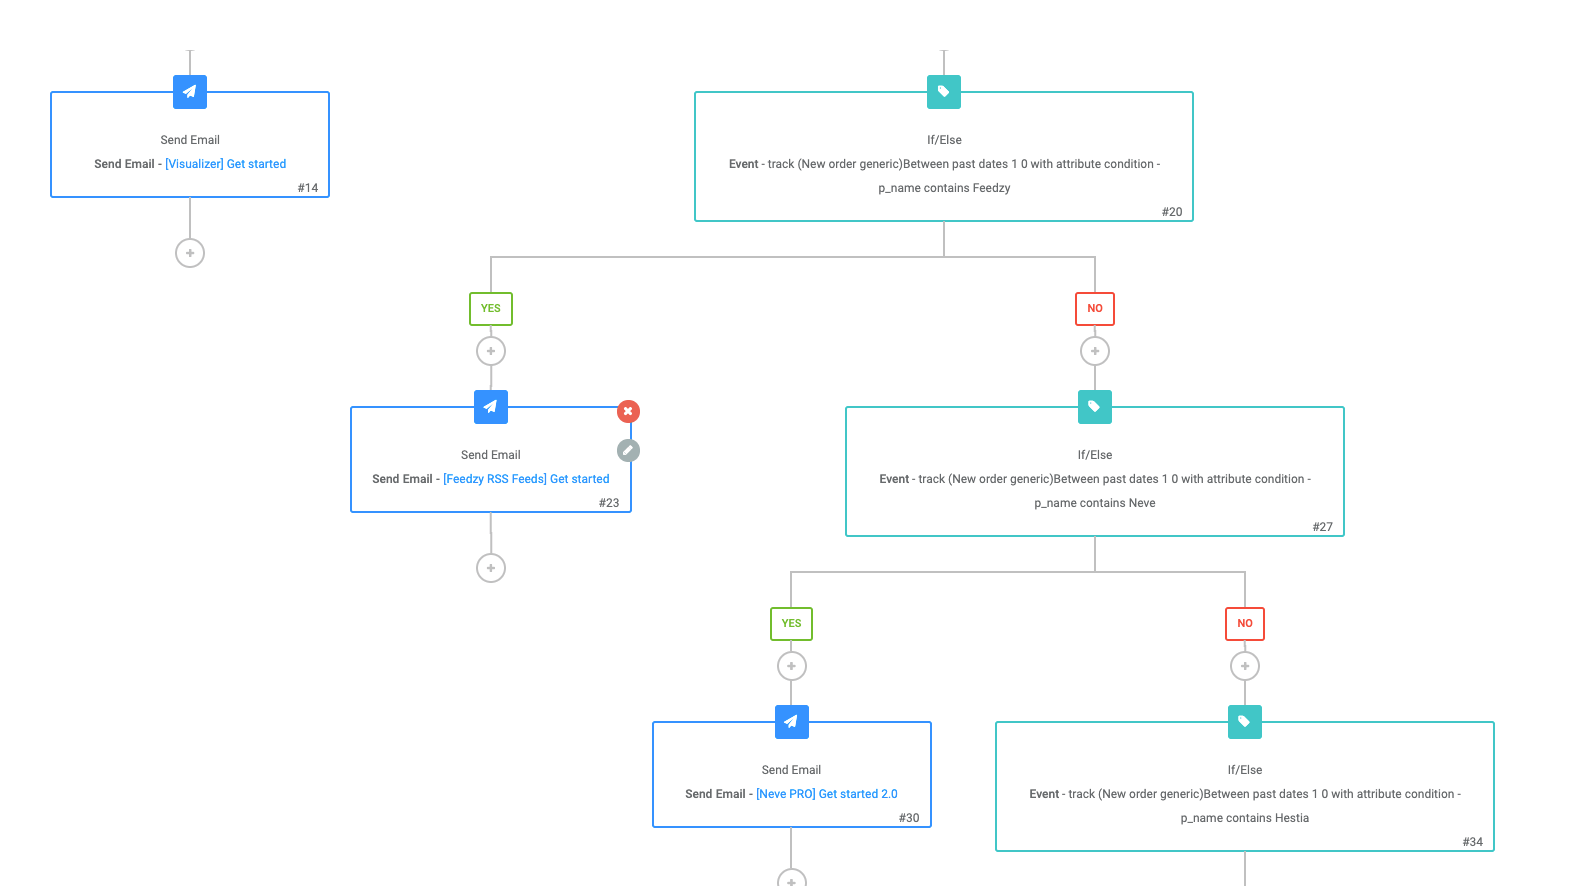 An example of our workflow from our purchasing email marketing strategy